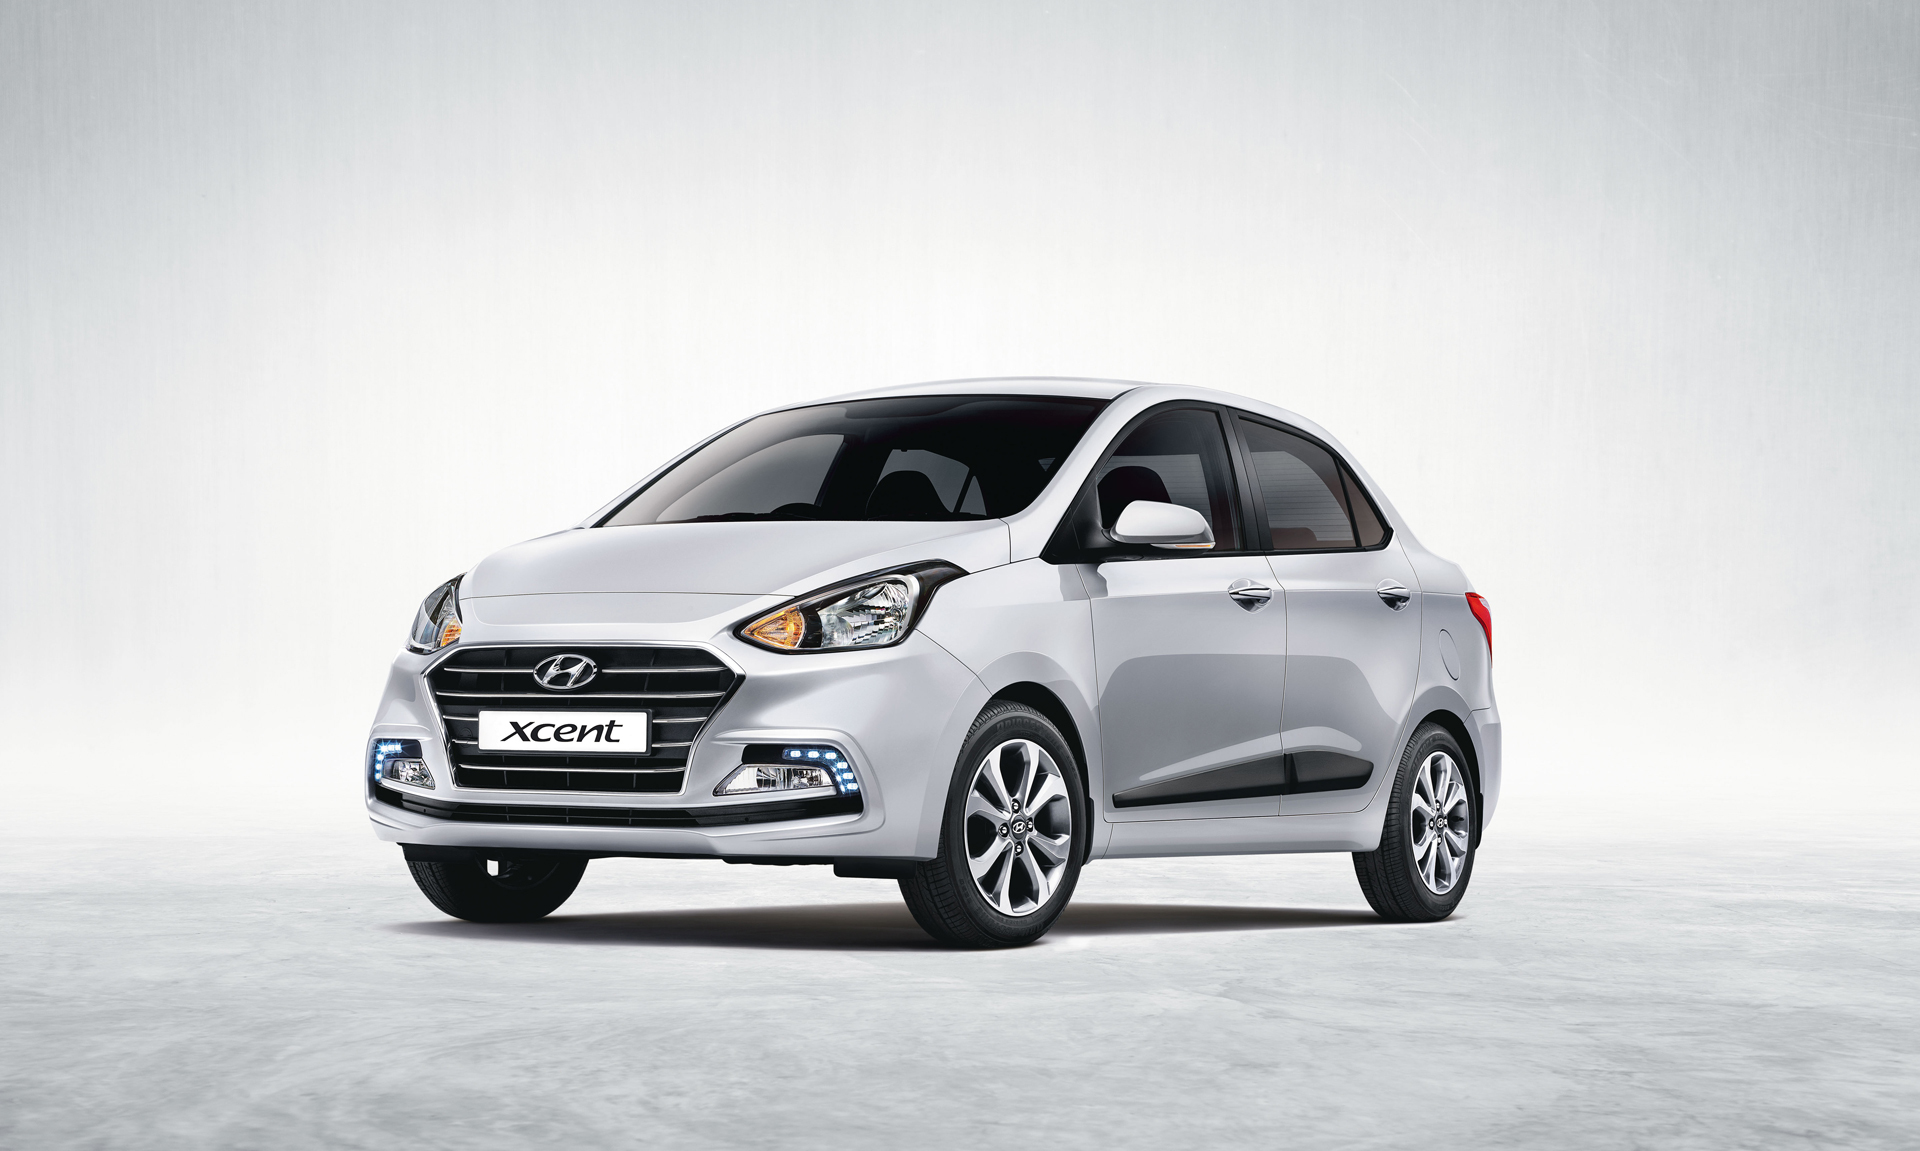 Hyundai Xcent 2017 Reviews Price Specifications Mileage